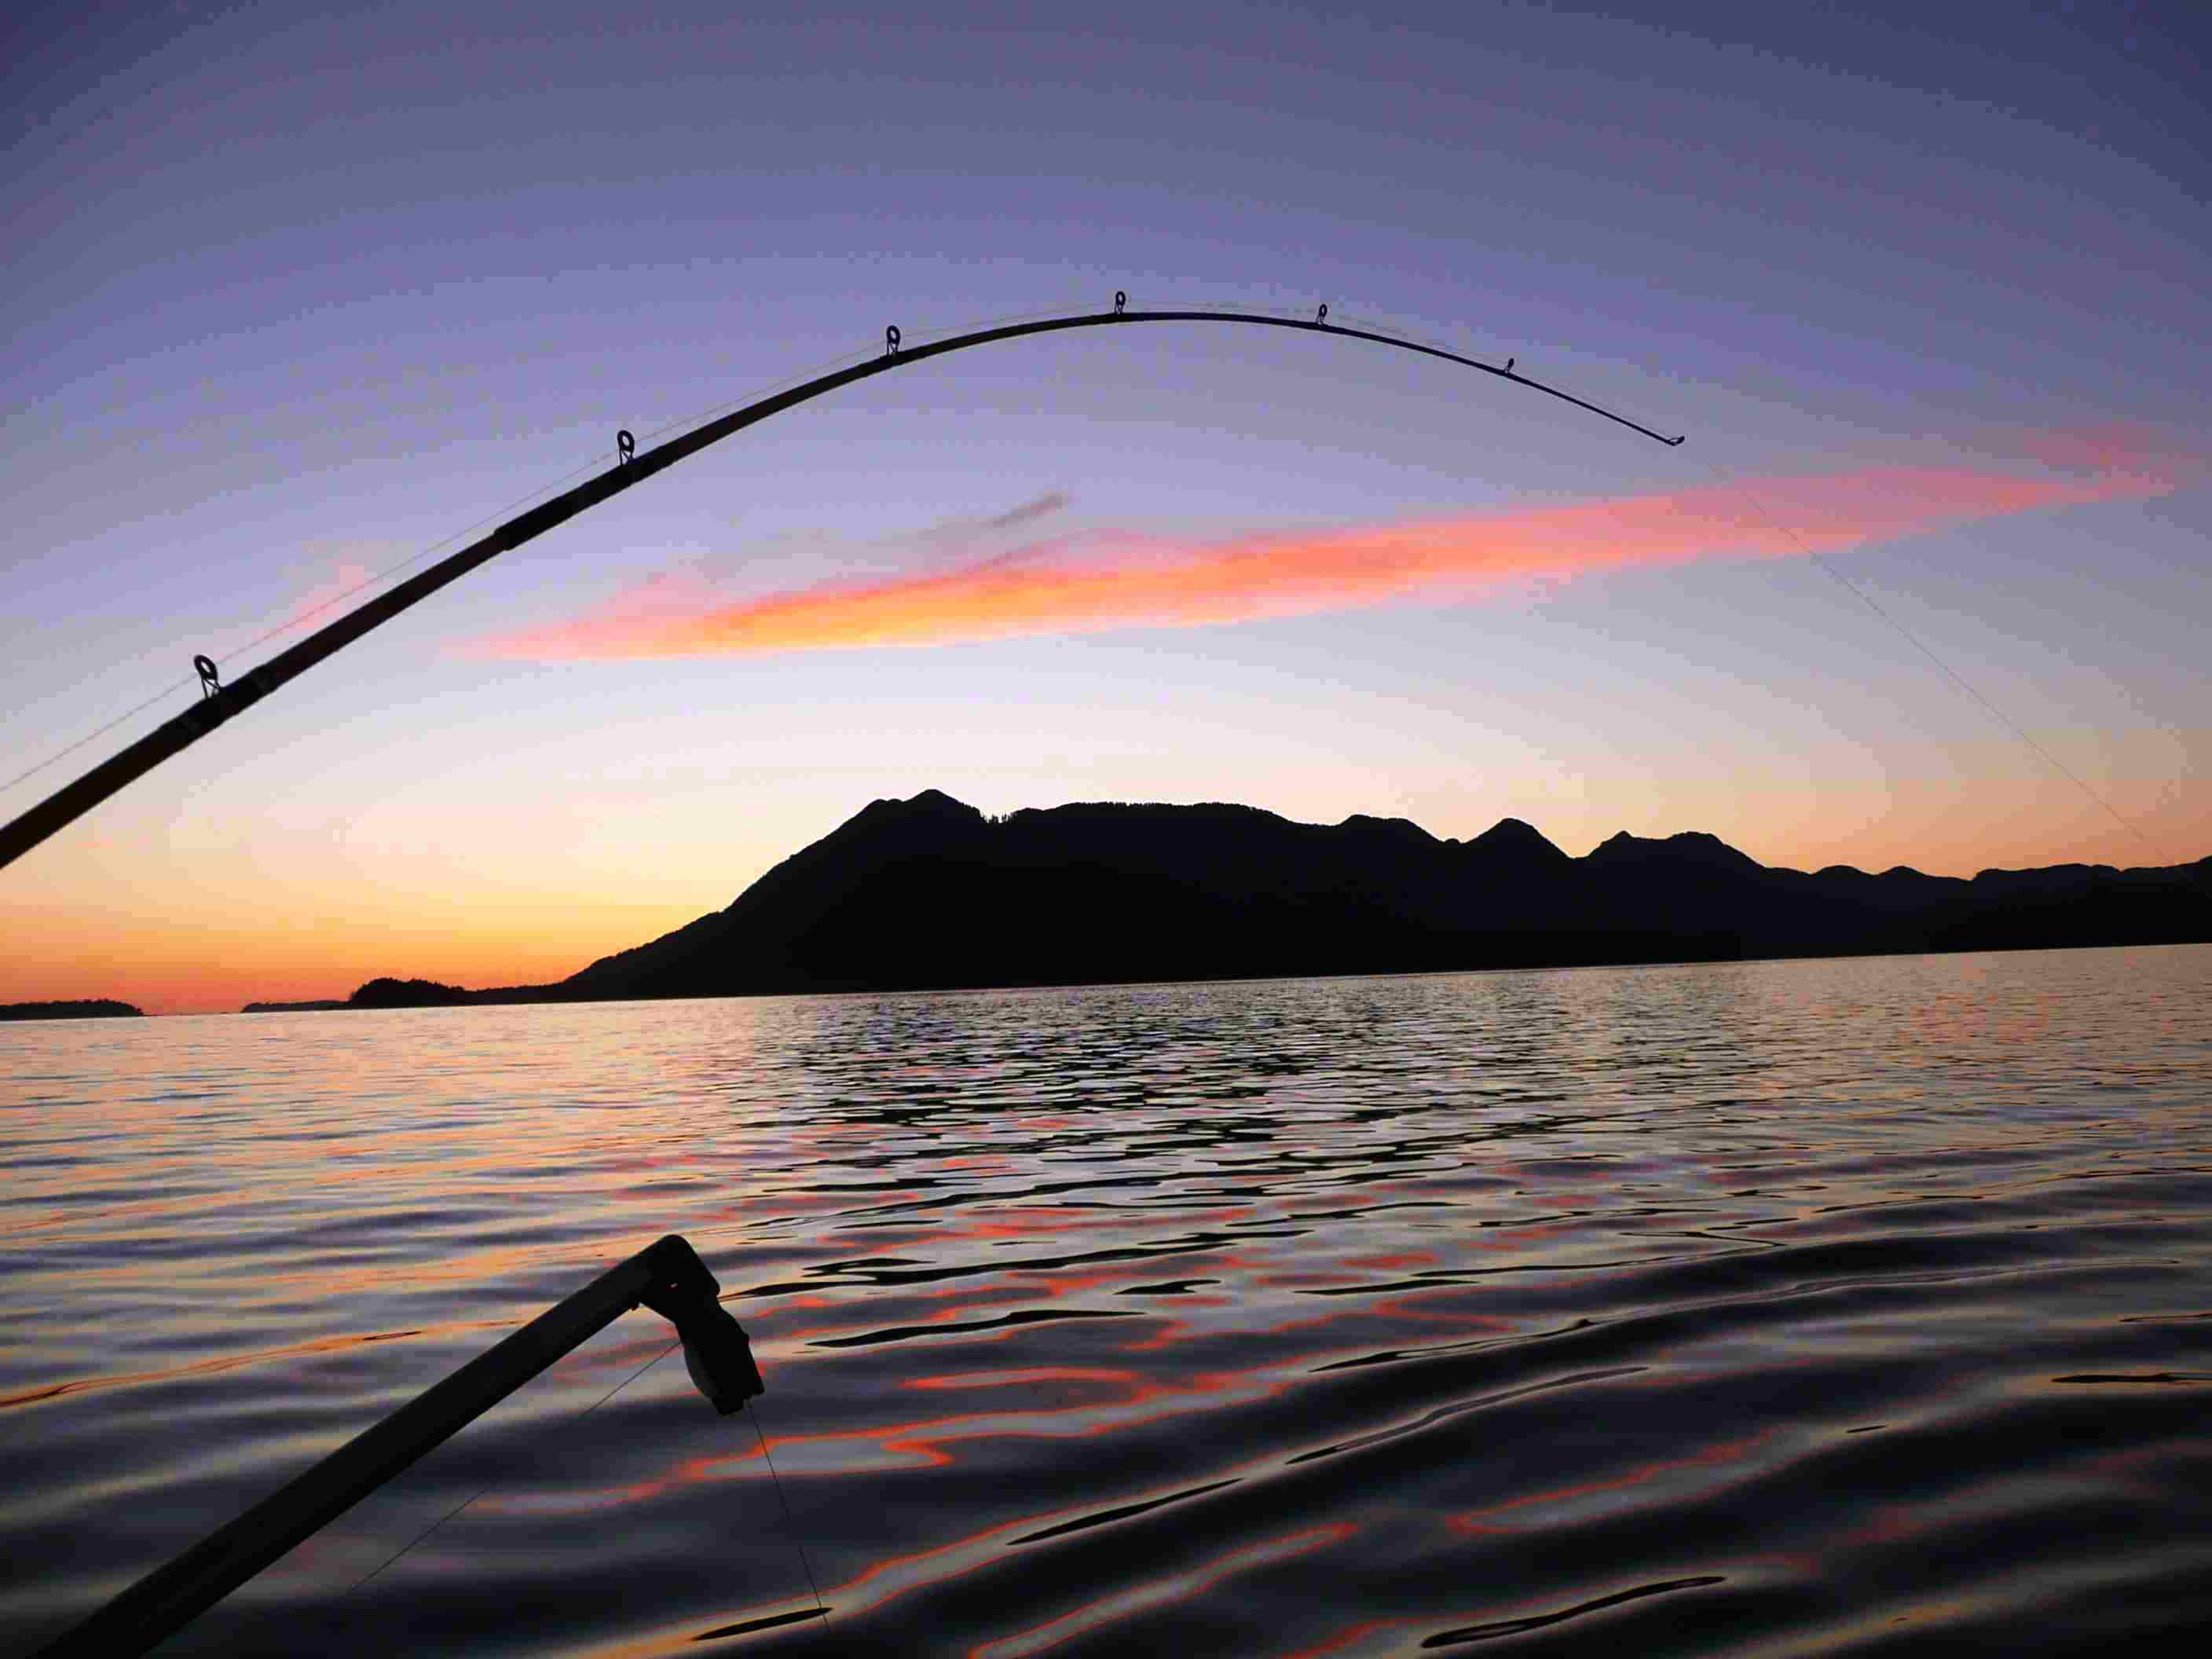 Fishing Rods In Sunset Wallpaper Picture 275 Wallpaper with 2816x2112 2816x2112